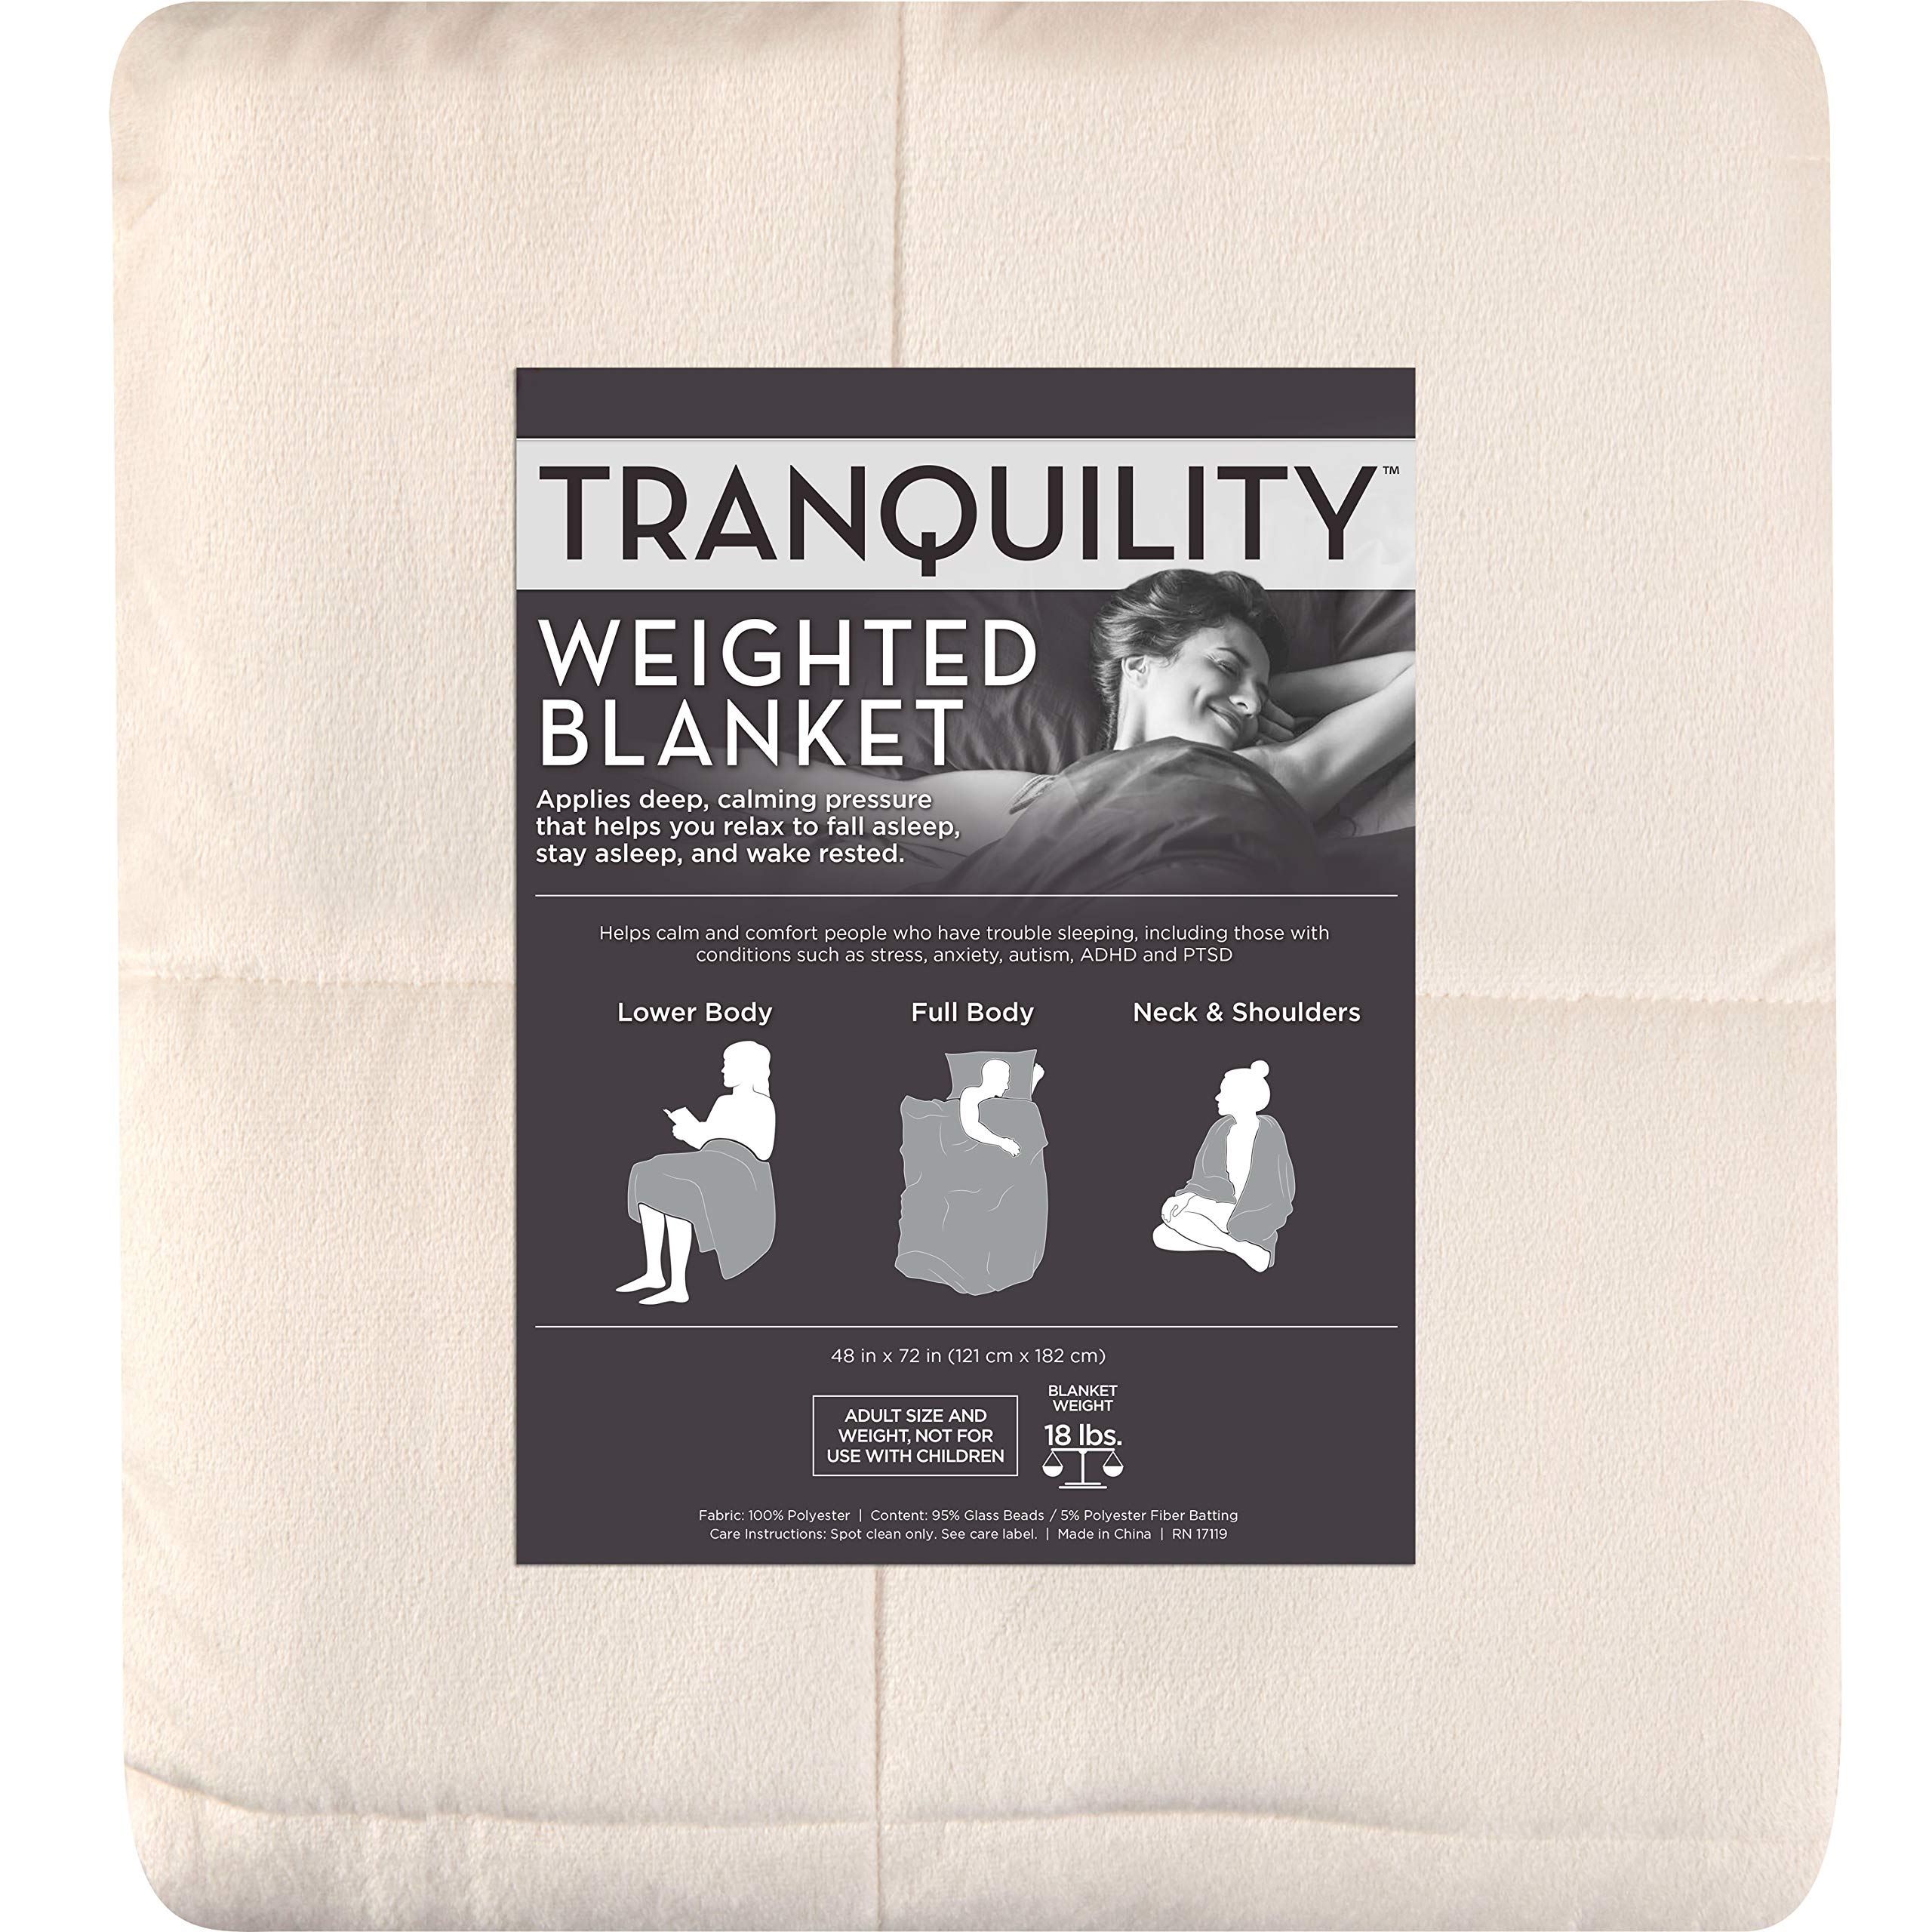 Tranquility Weighted Blankets - 18 Pounds (Ivory) by Tranquility